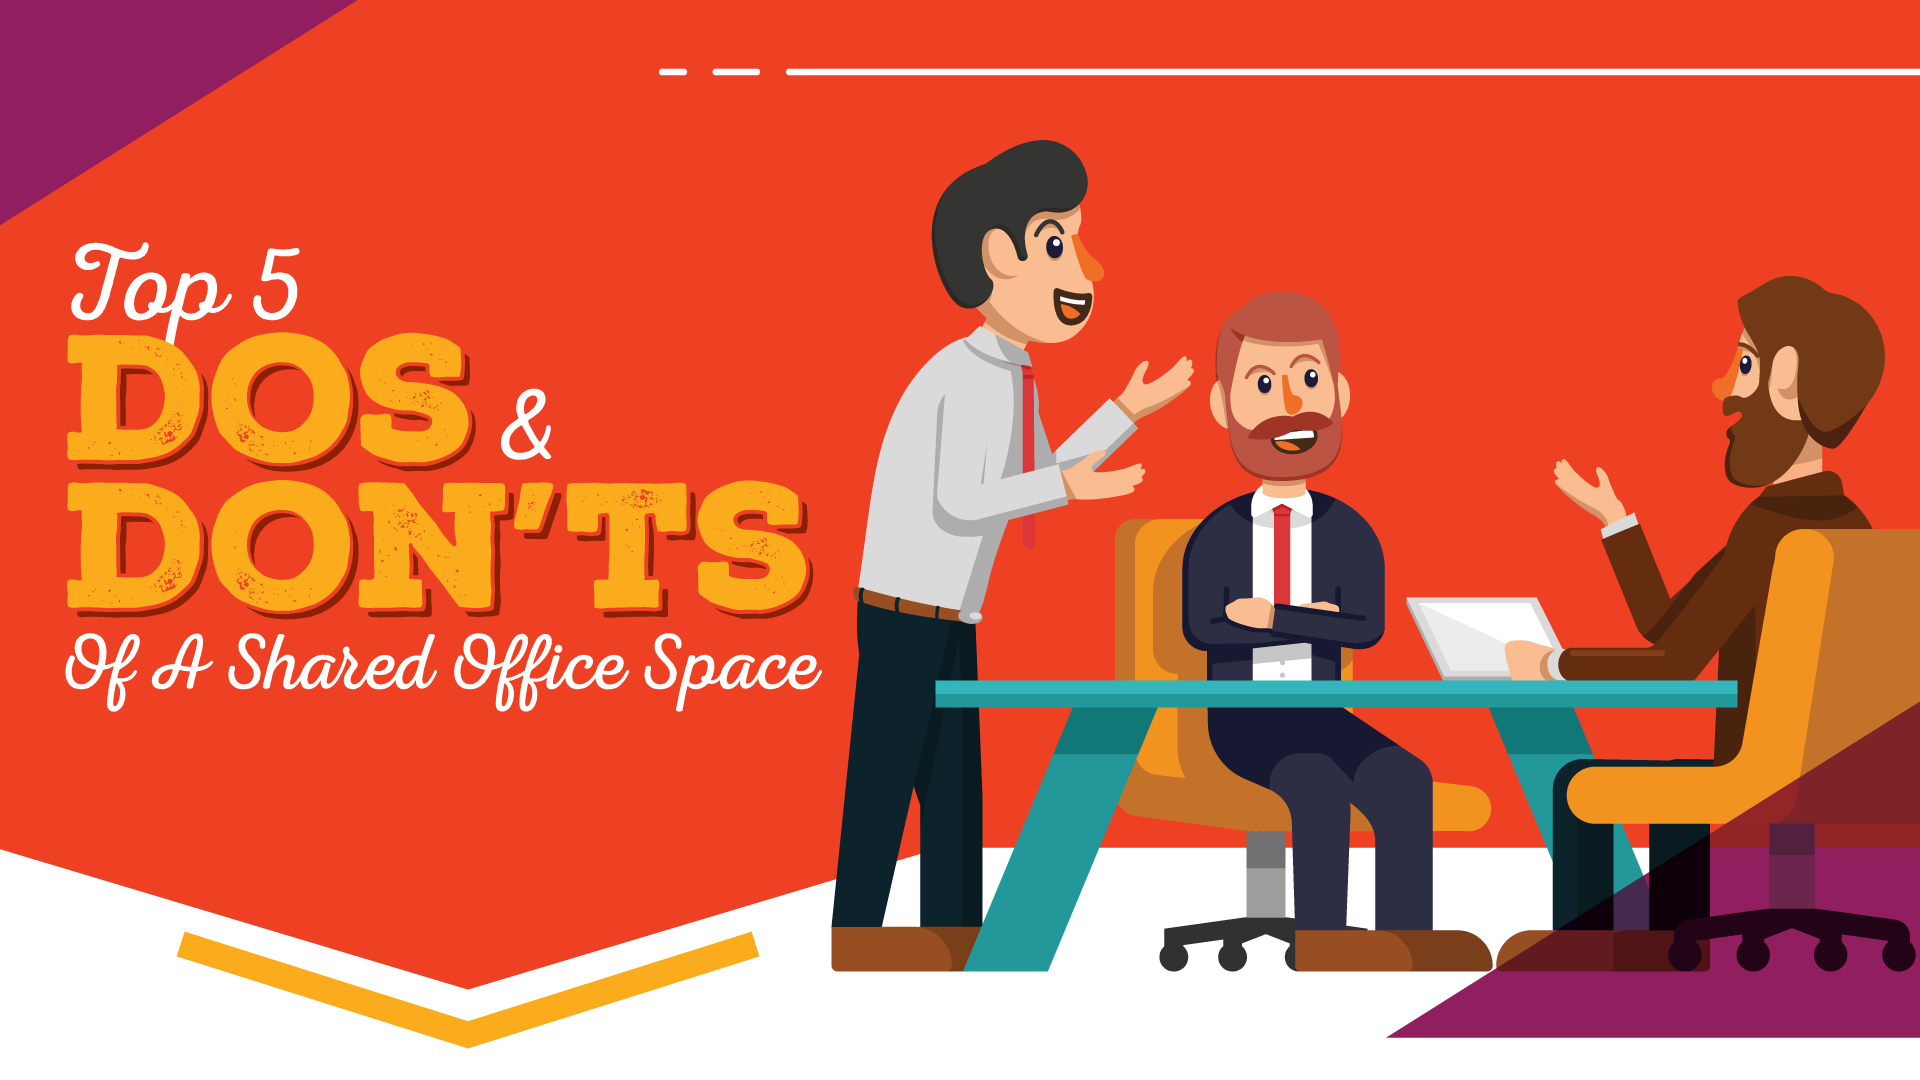 Do's and Don'ts of Shared Office Space